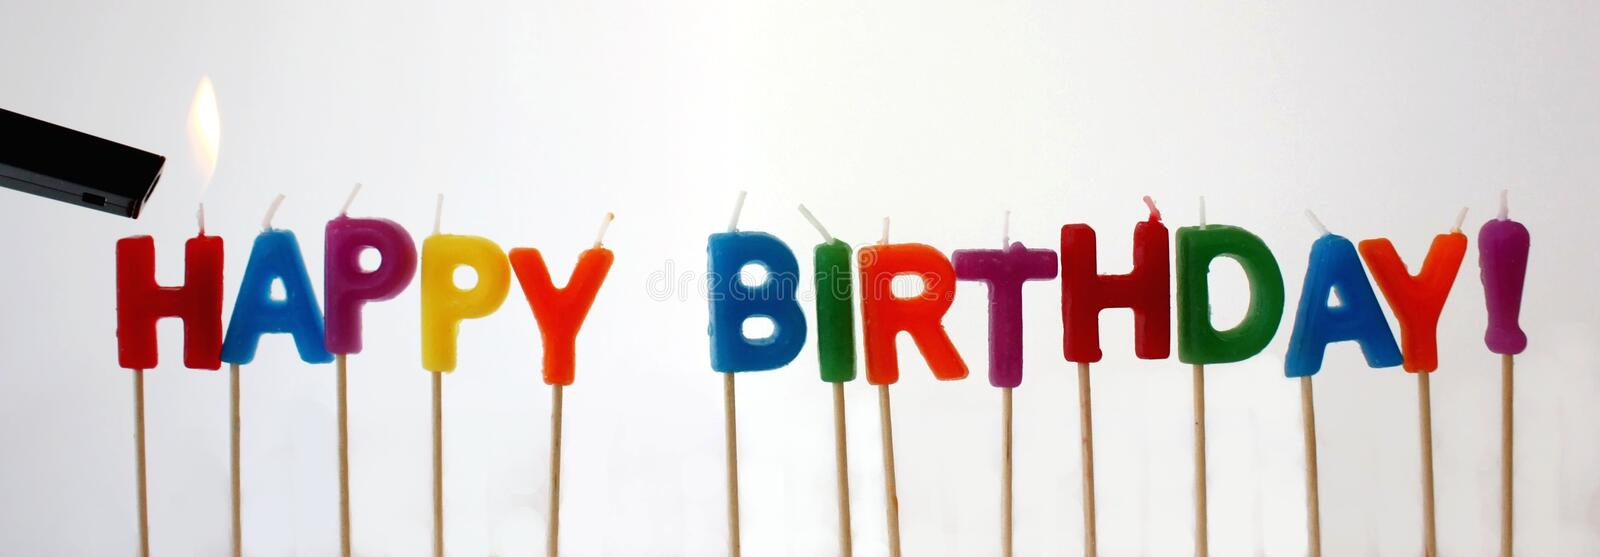 Happy Birthday Candles. Cute Happy Birthday candles being lit stock photo